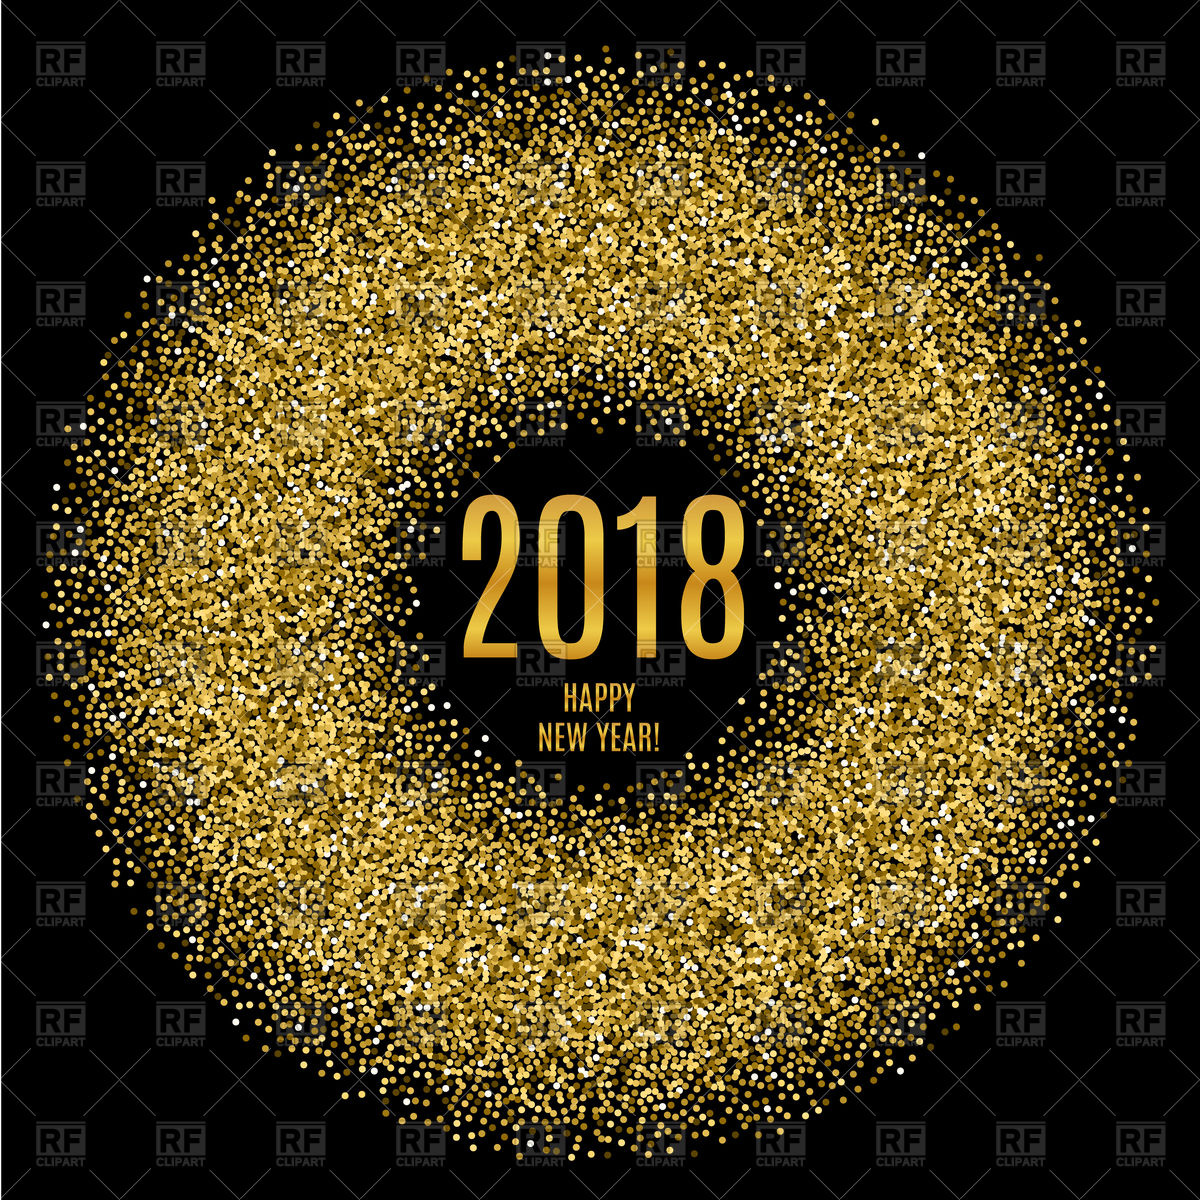 2018 Happy New Year poster with glitter circle Stock Vector Image.